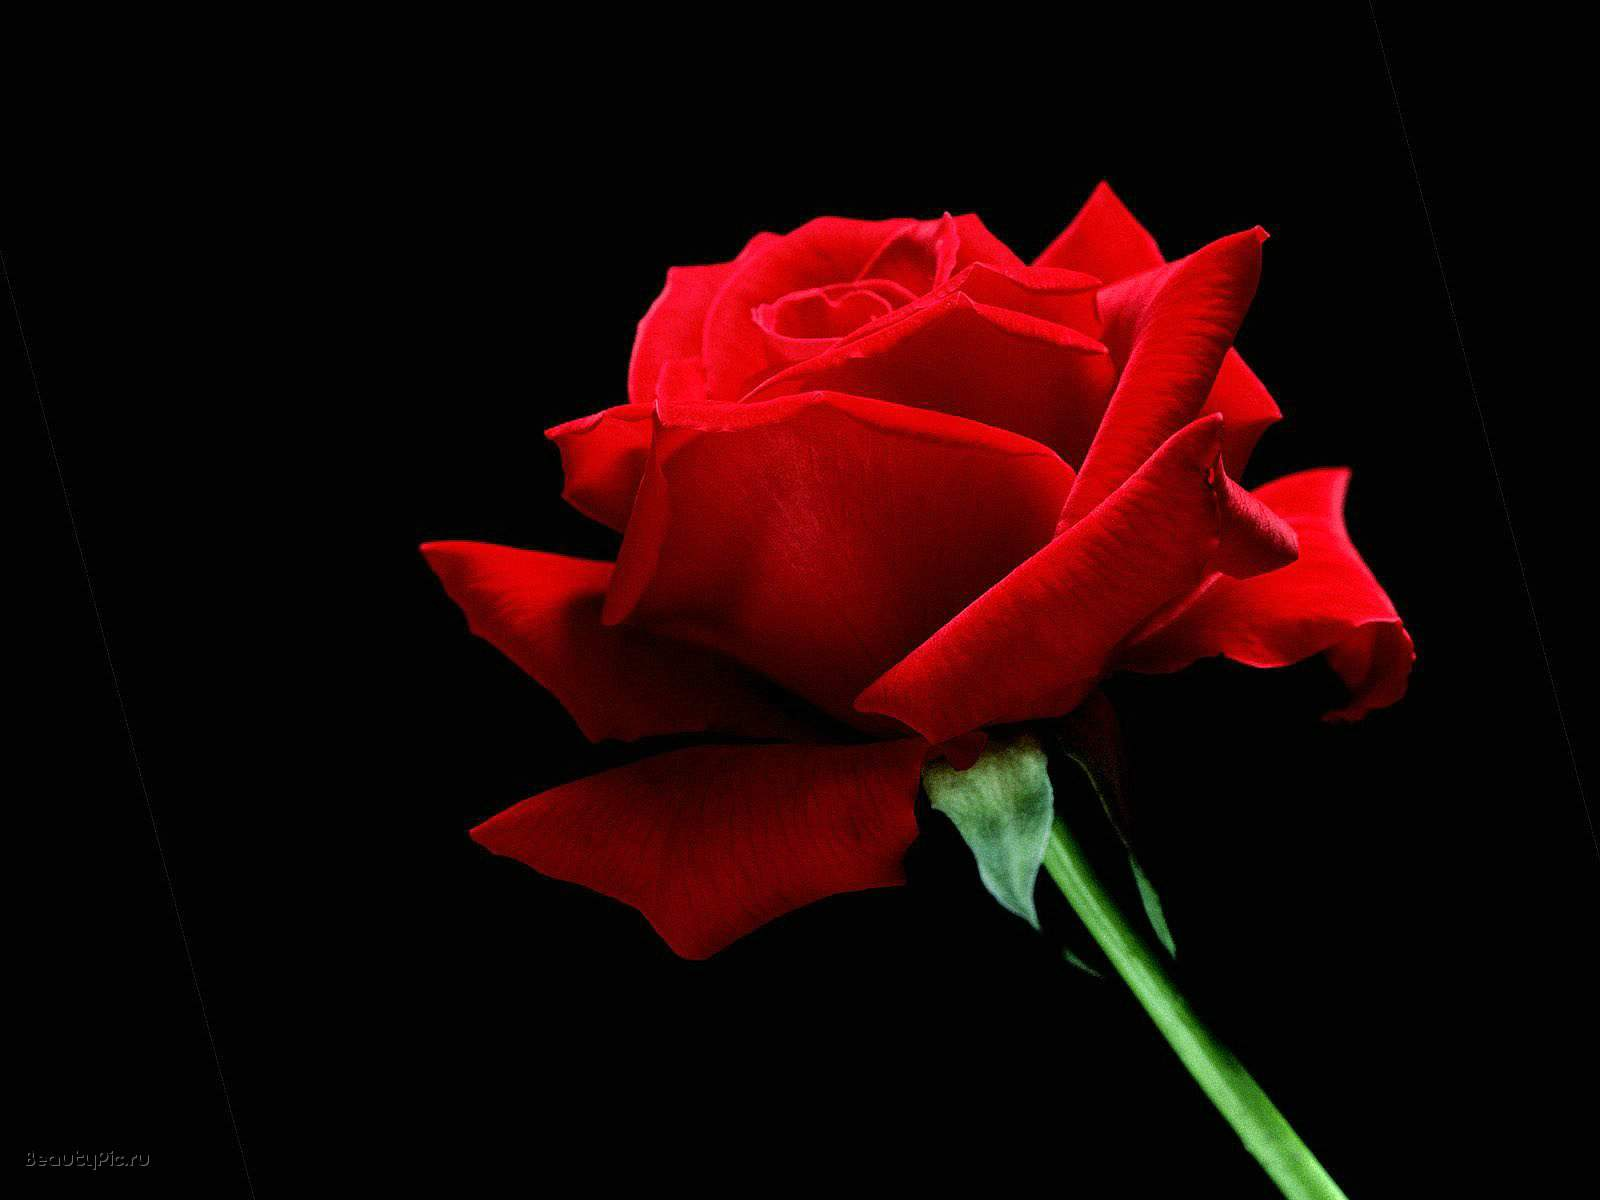 Black And White Wallpapers: Red Rose On Black Background